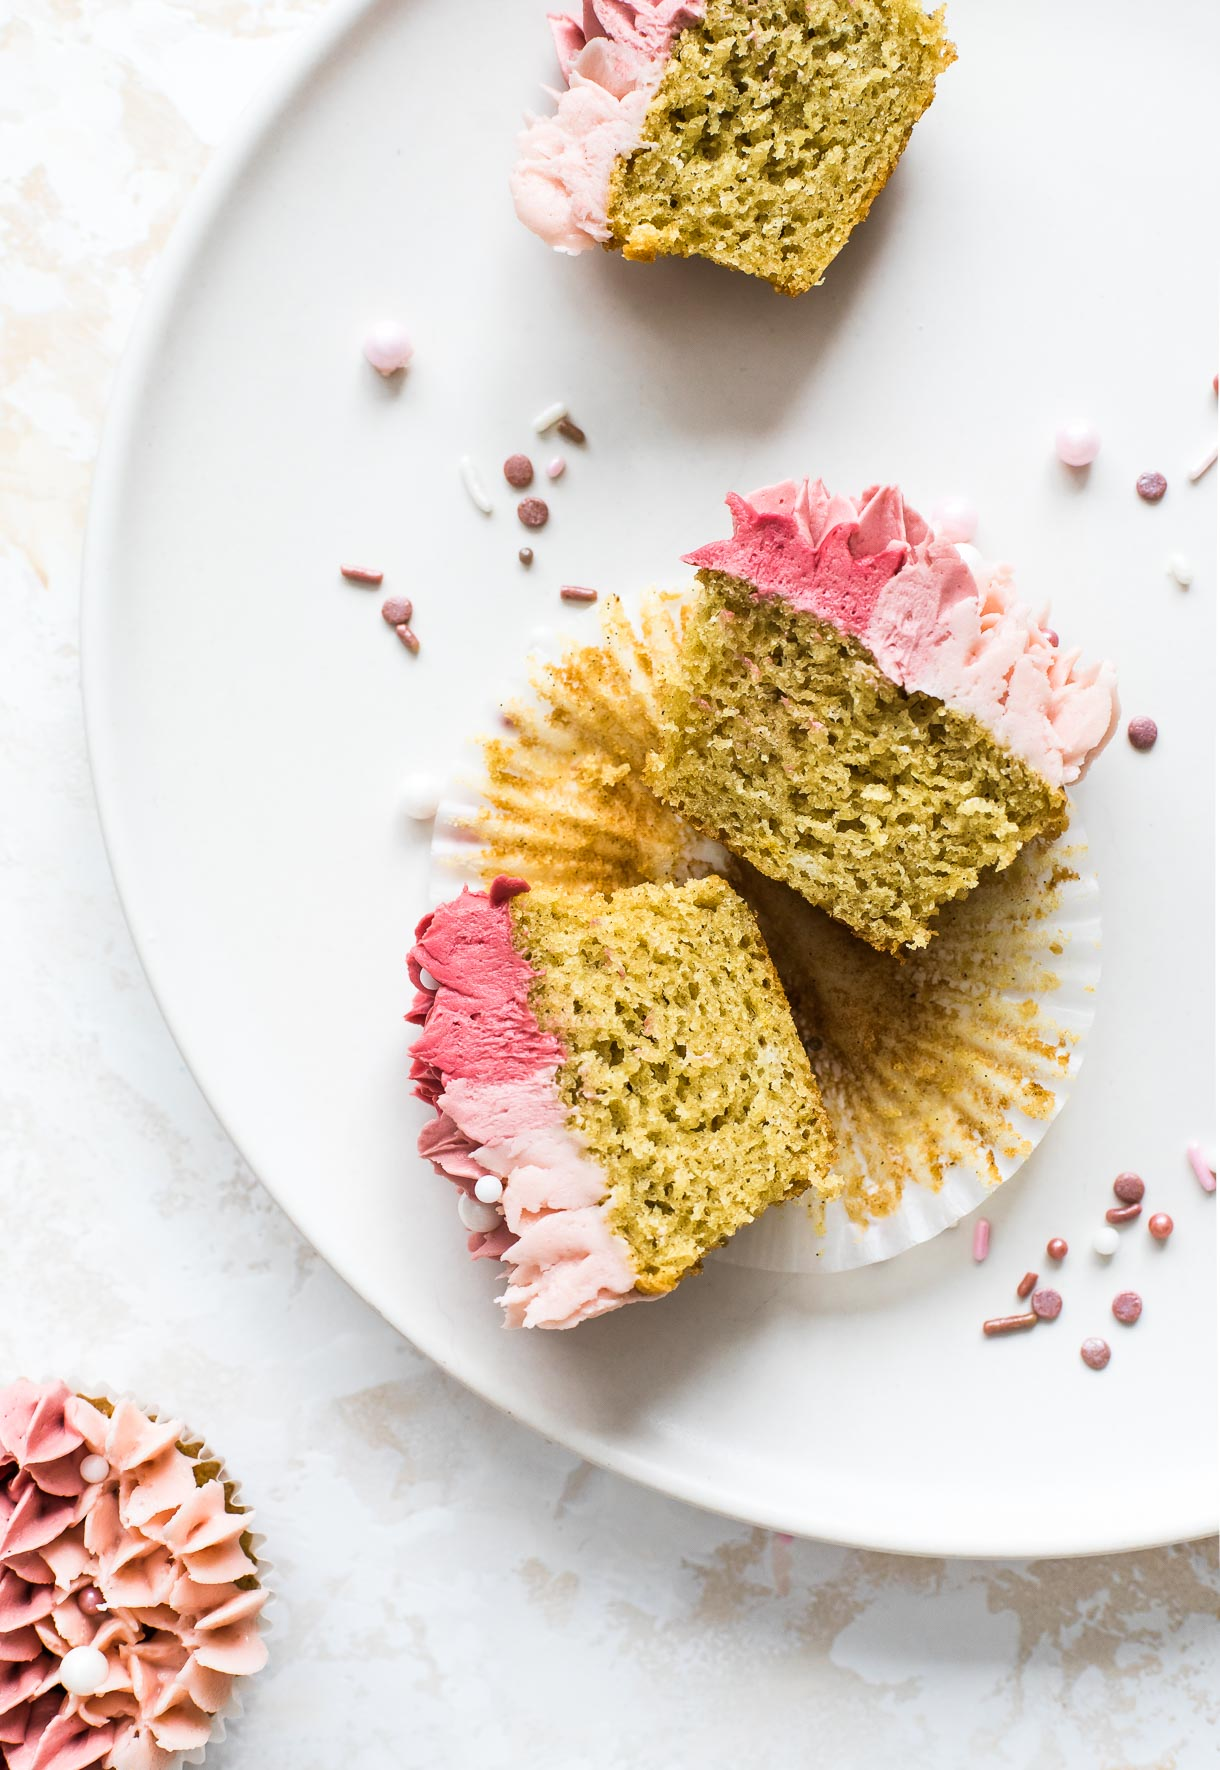 gluten free vanilla cupcakes cut open to show crumb, with pink rose sprinkles